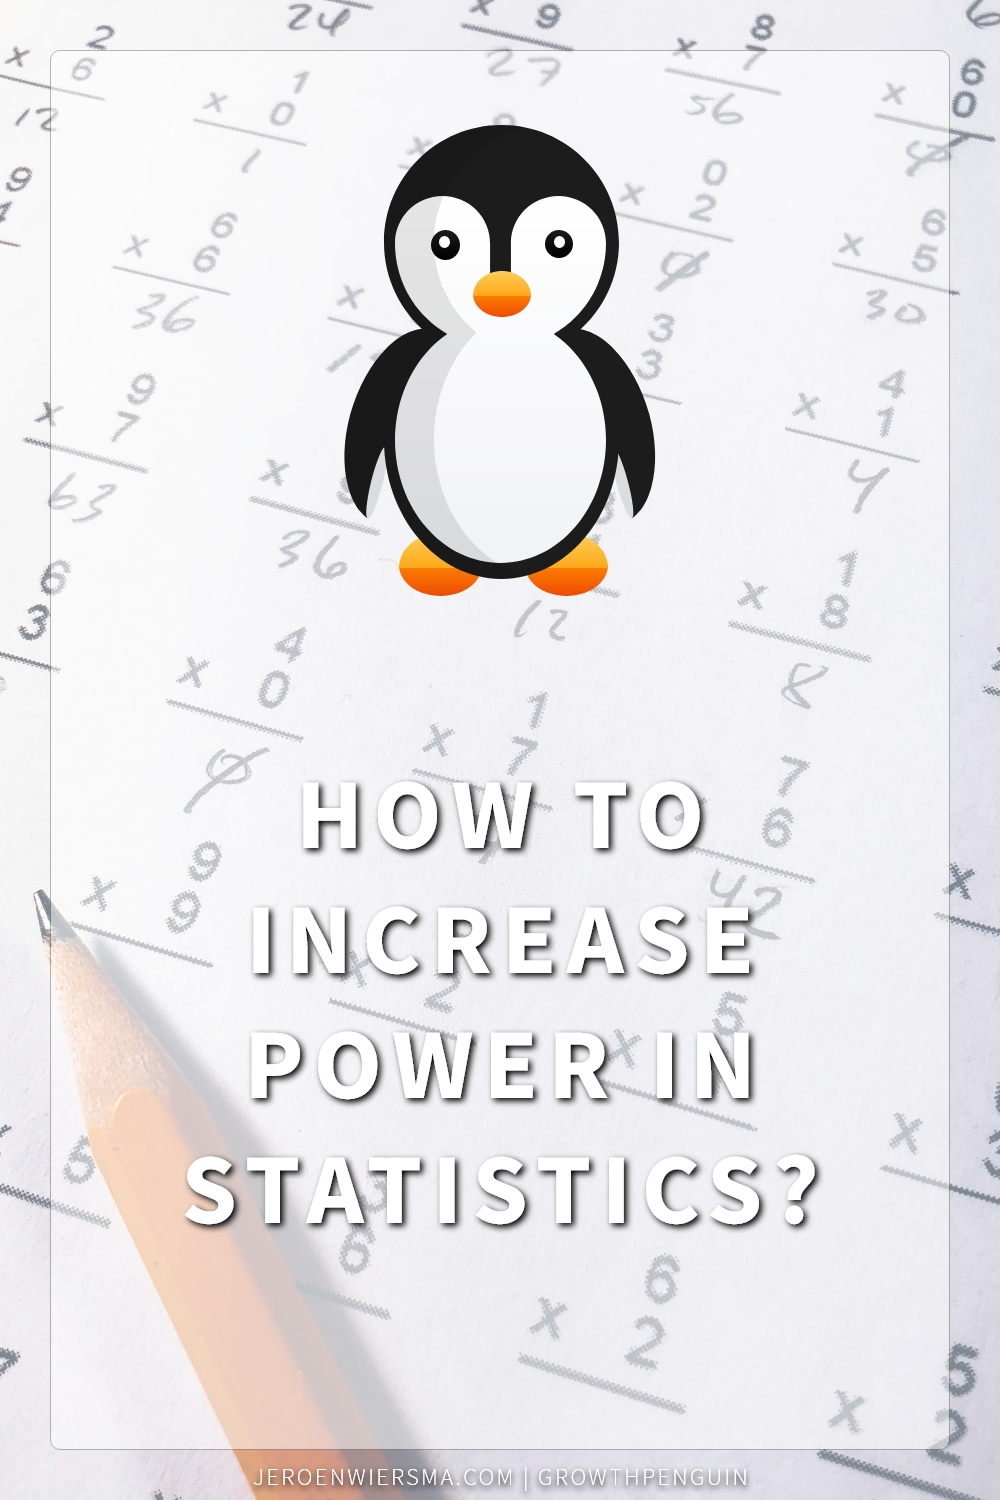 How to increase power in statistics